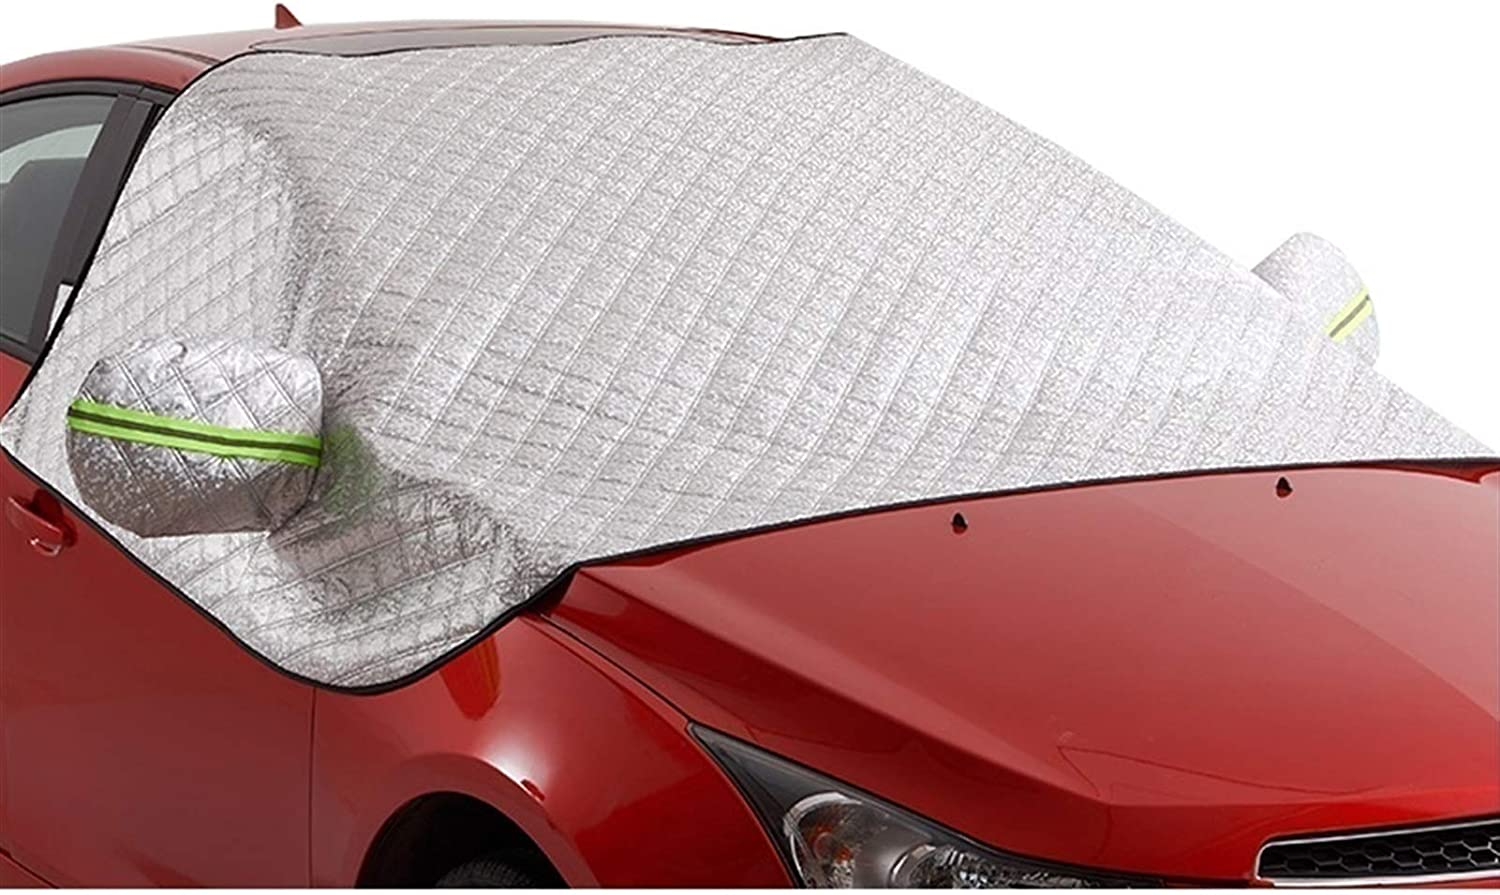 BACKJIA Car Cover Windshield Shipping included Outdoor Durable Waterproof Over item handling H